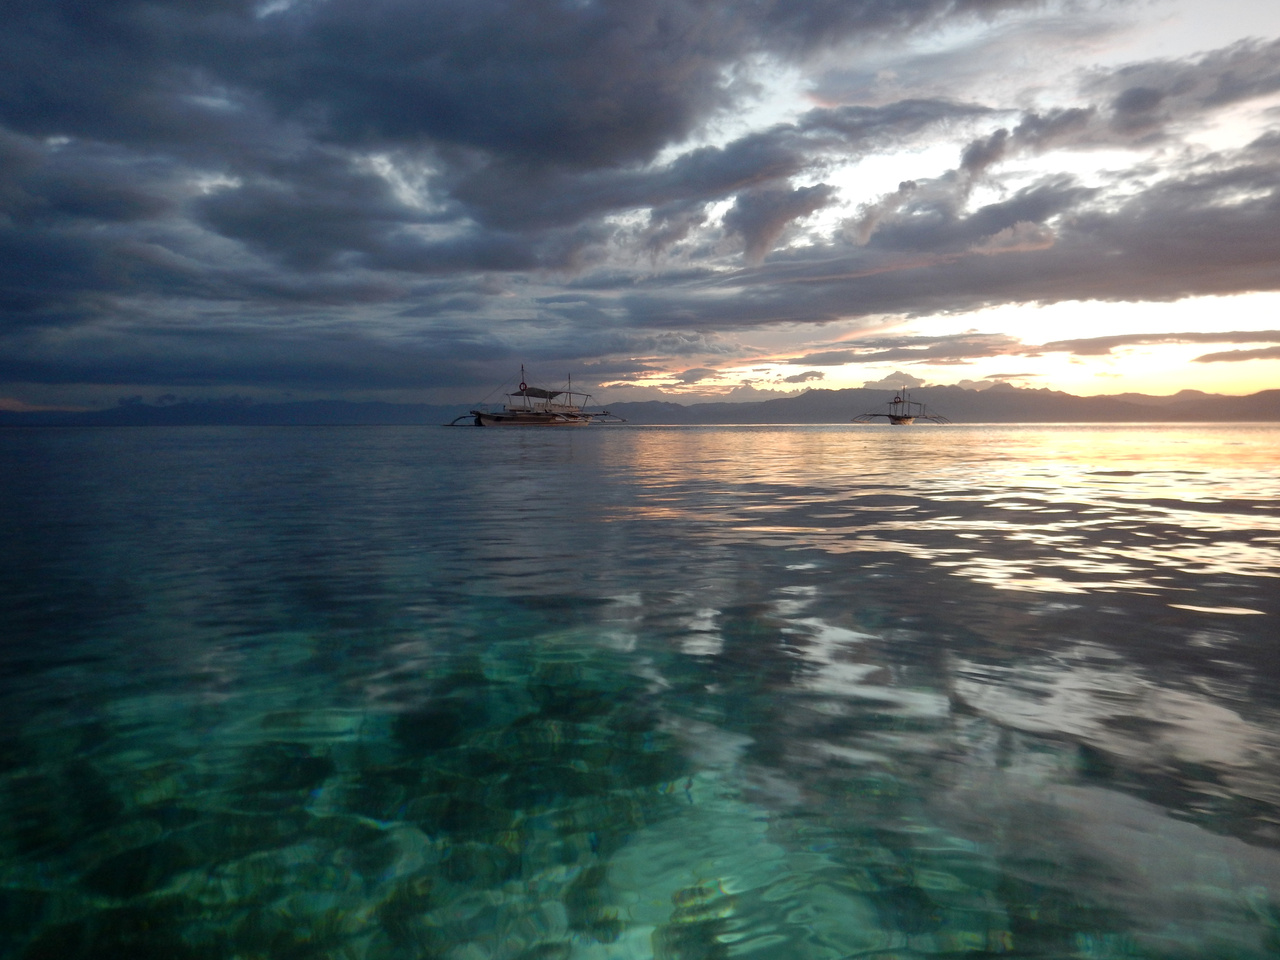 Sunset over the ocean at Moalboal, Philippines